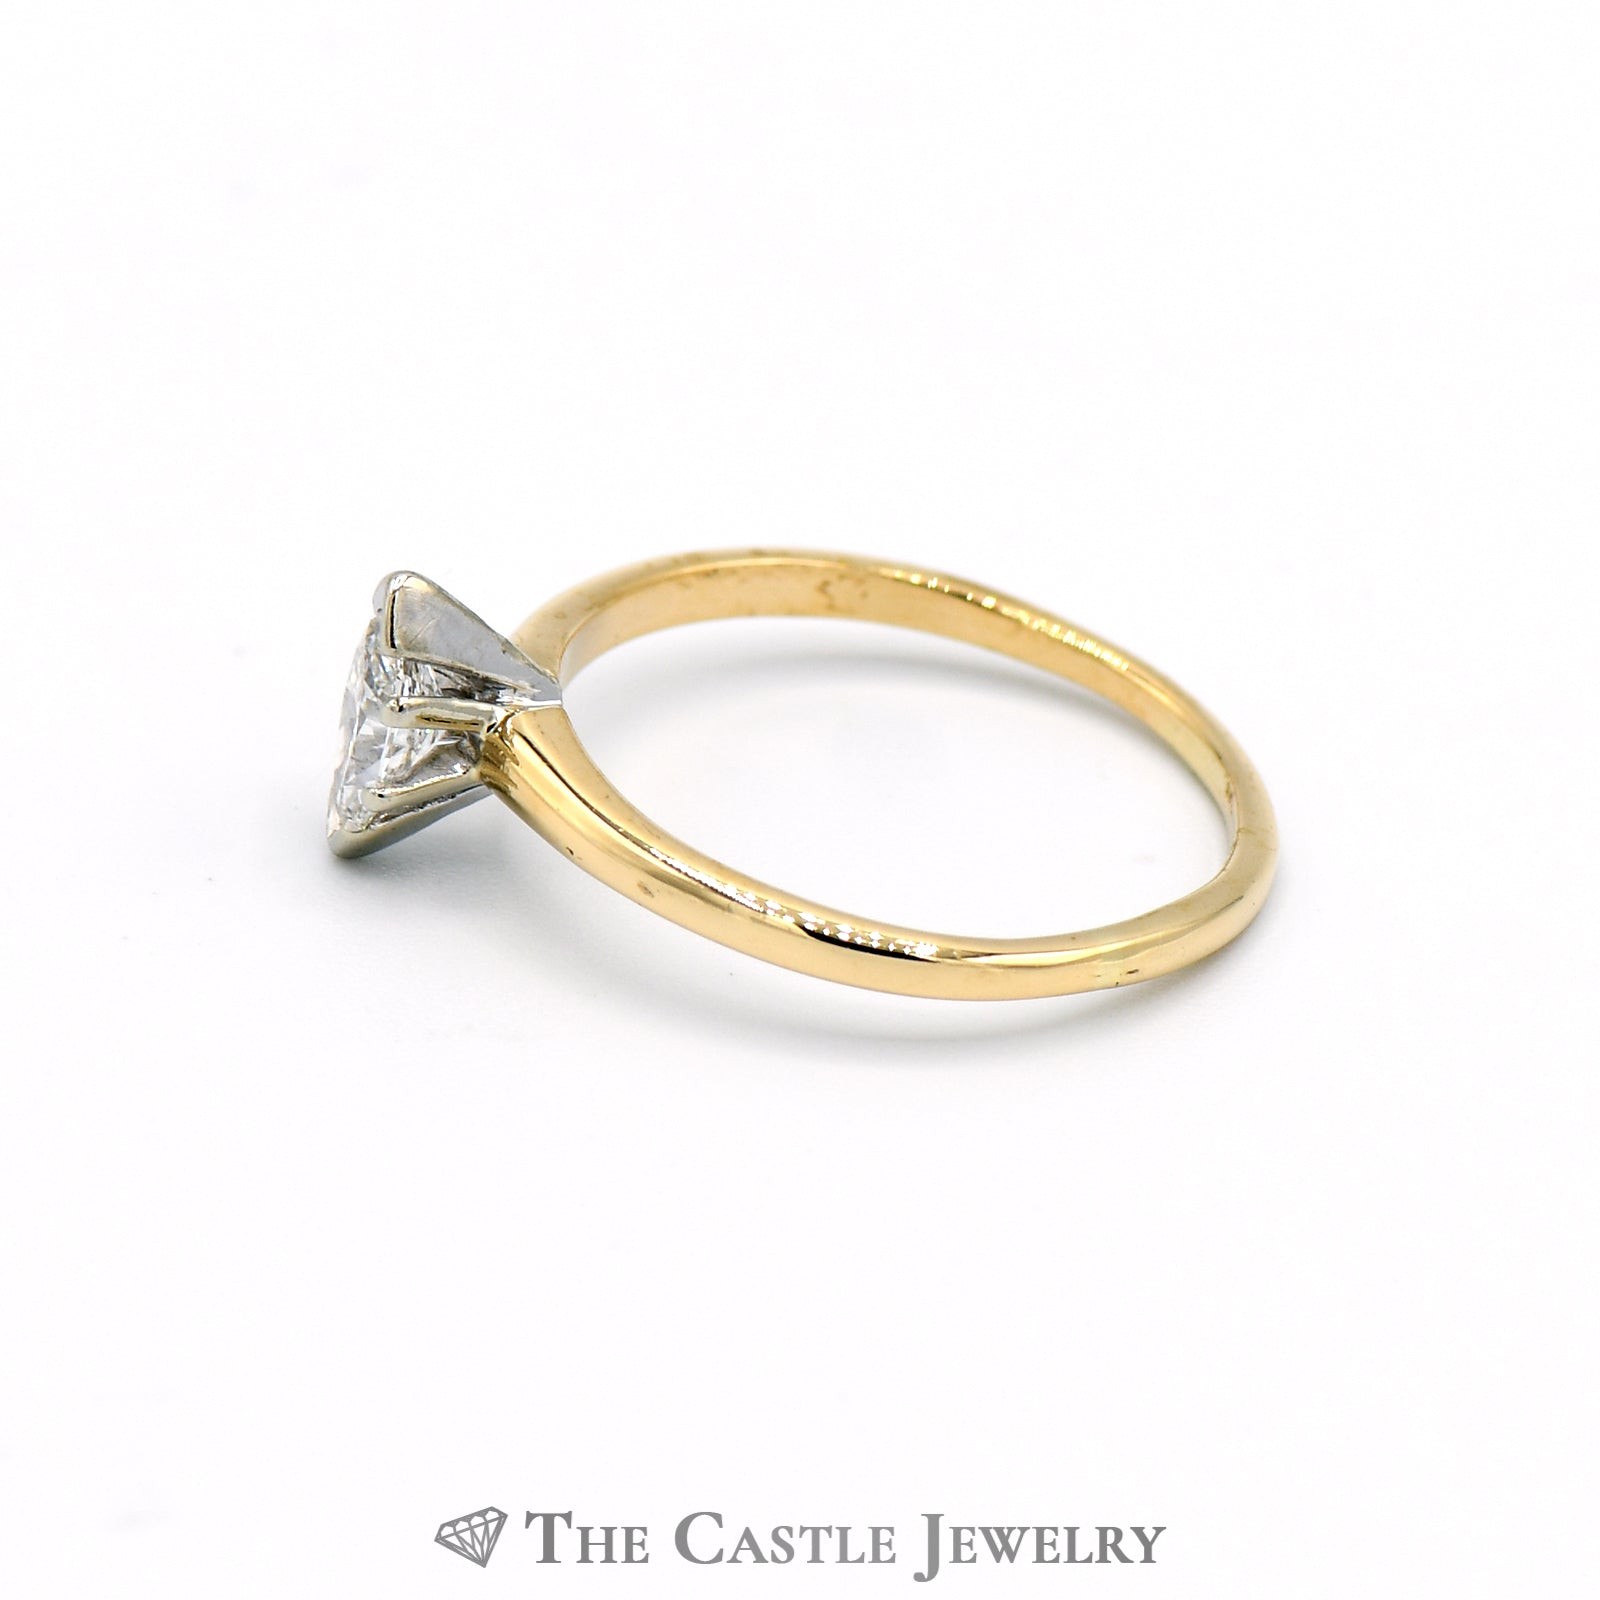 Marquise Cut .45 Carat Solitaire Engagement Ring in 14k Yellow Gold-2